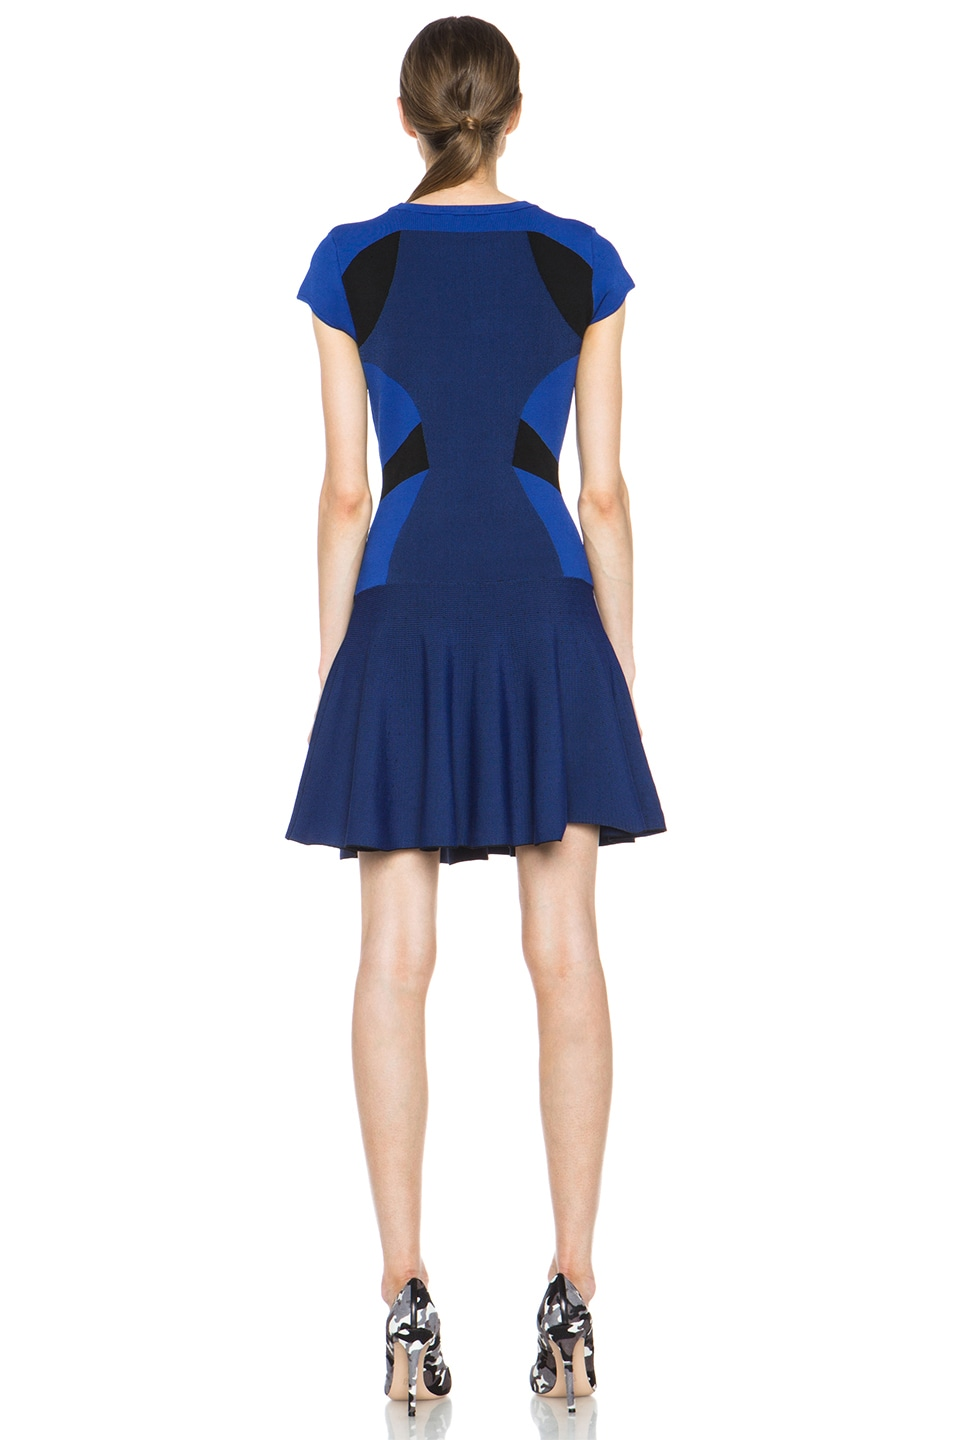 Image 4 of Diane von Furstenberg Renee Dress in Vivid Blue & Black